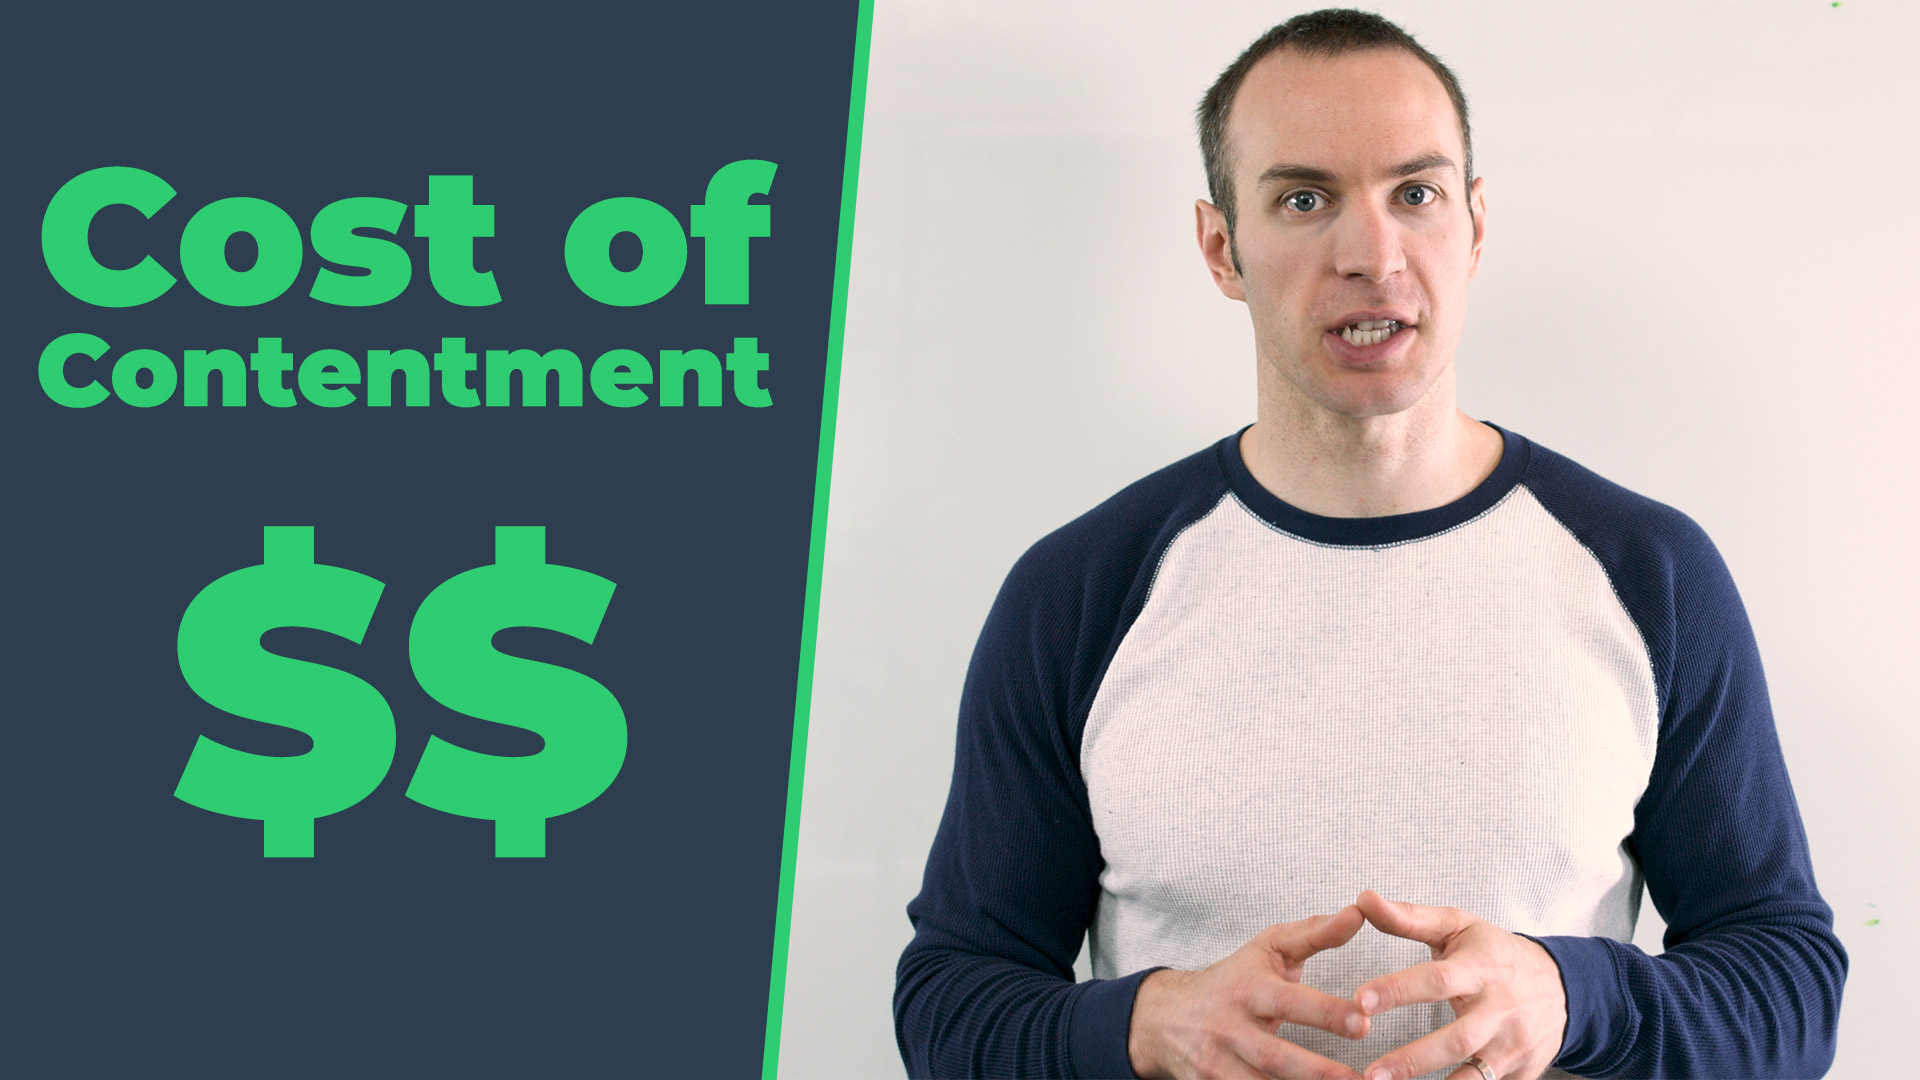 Cost of Contentment